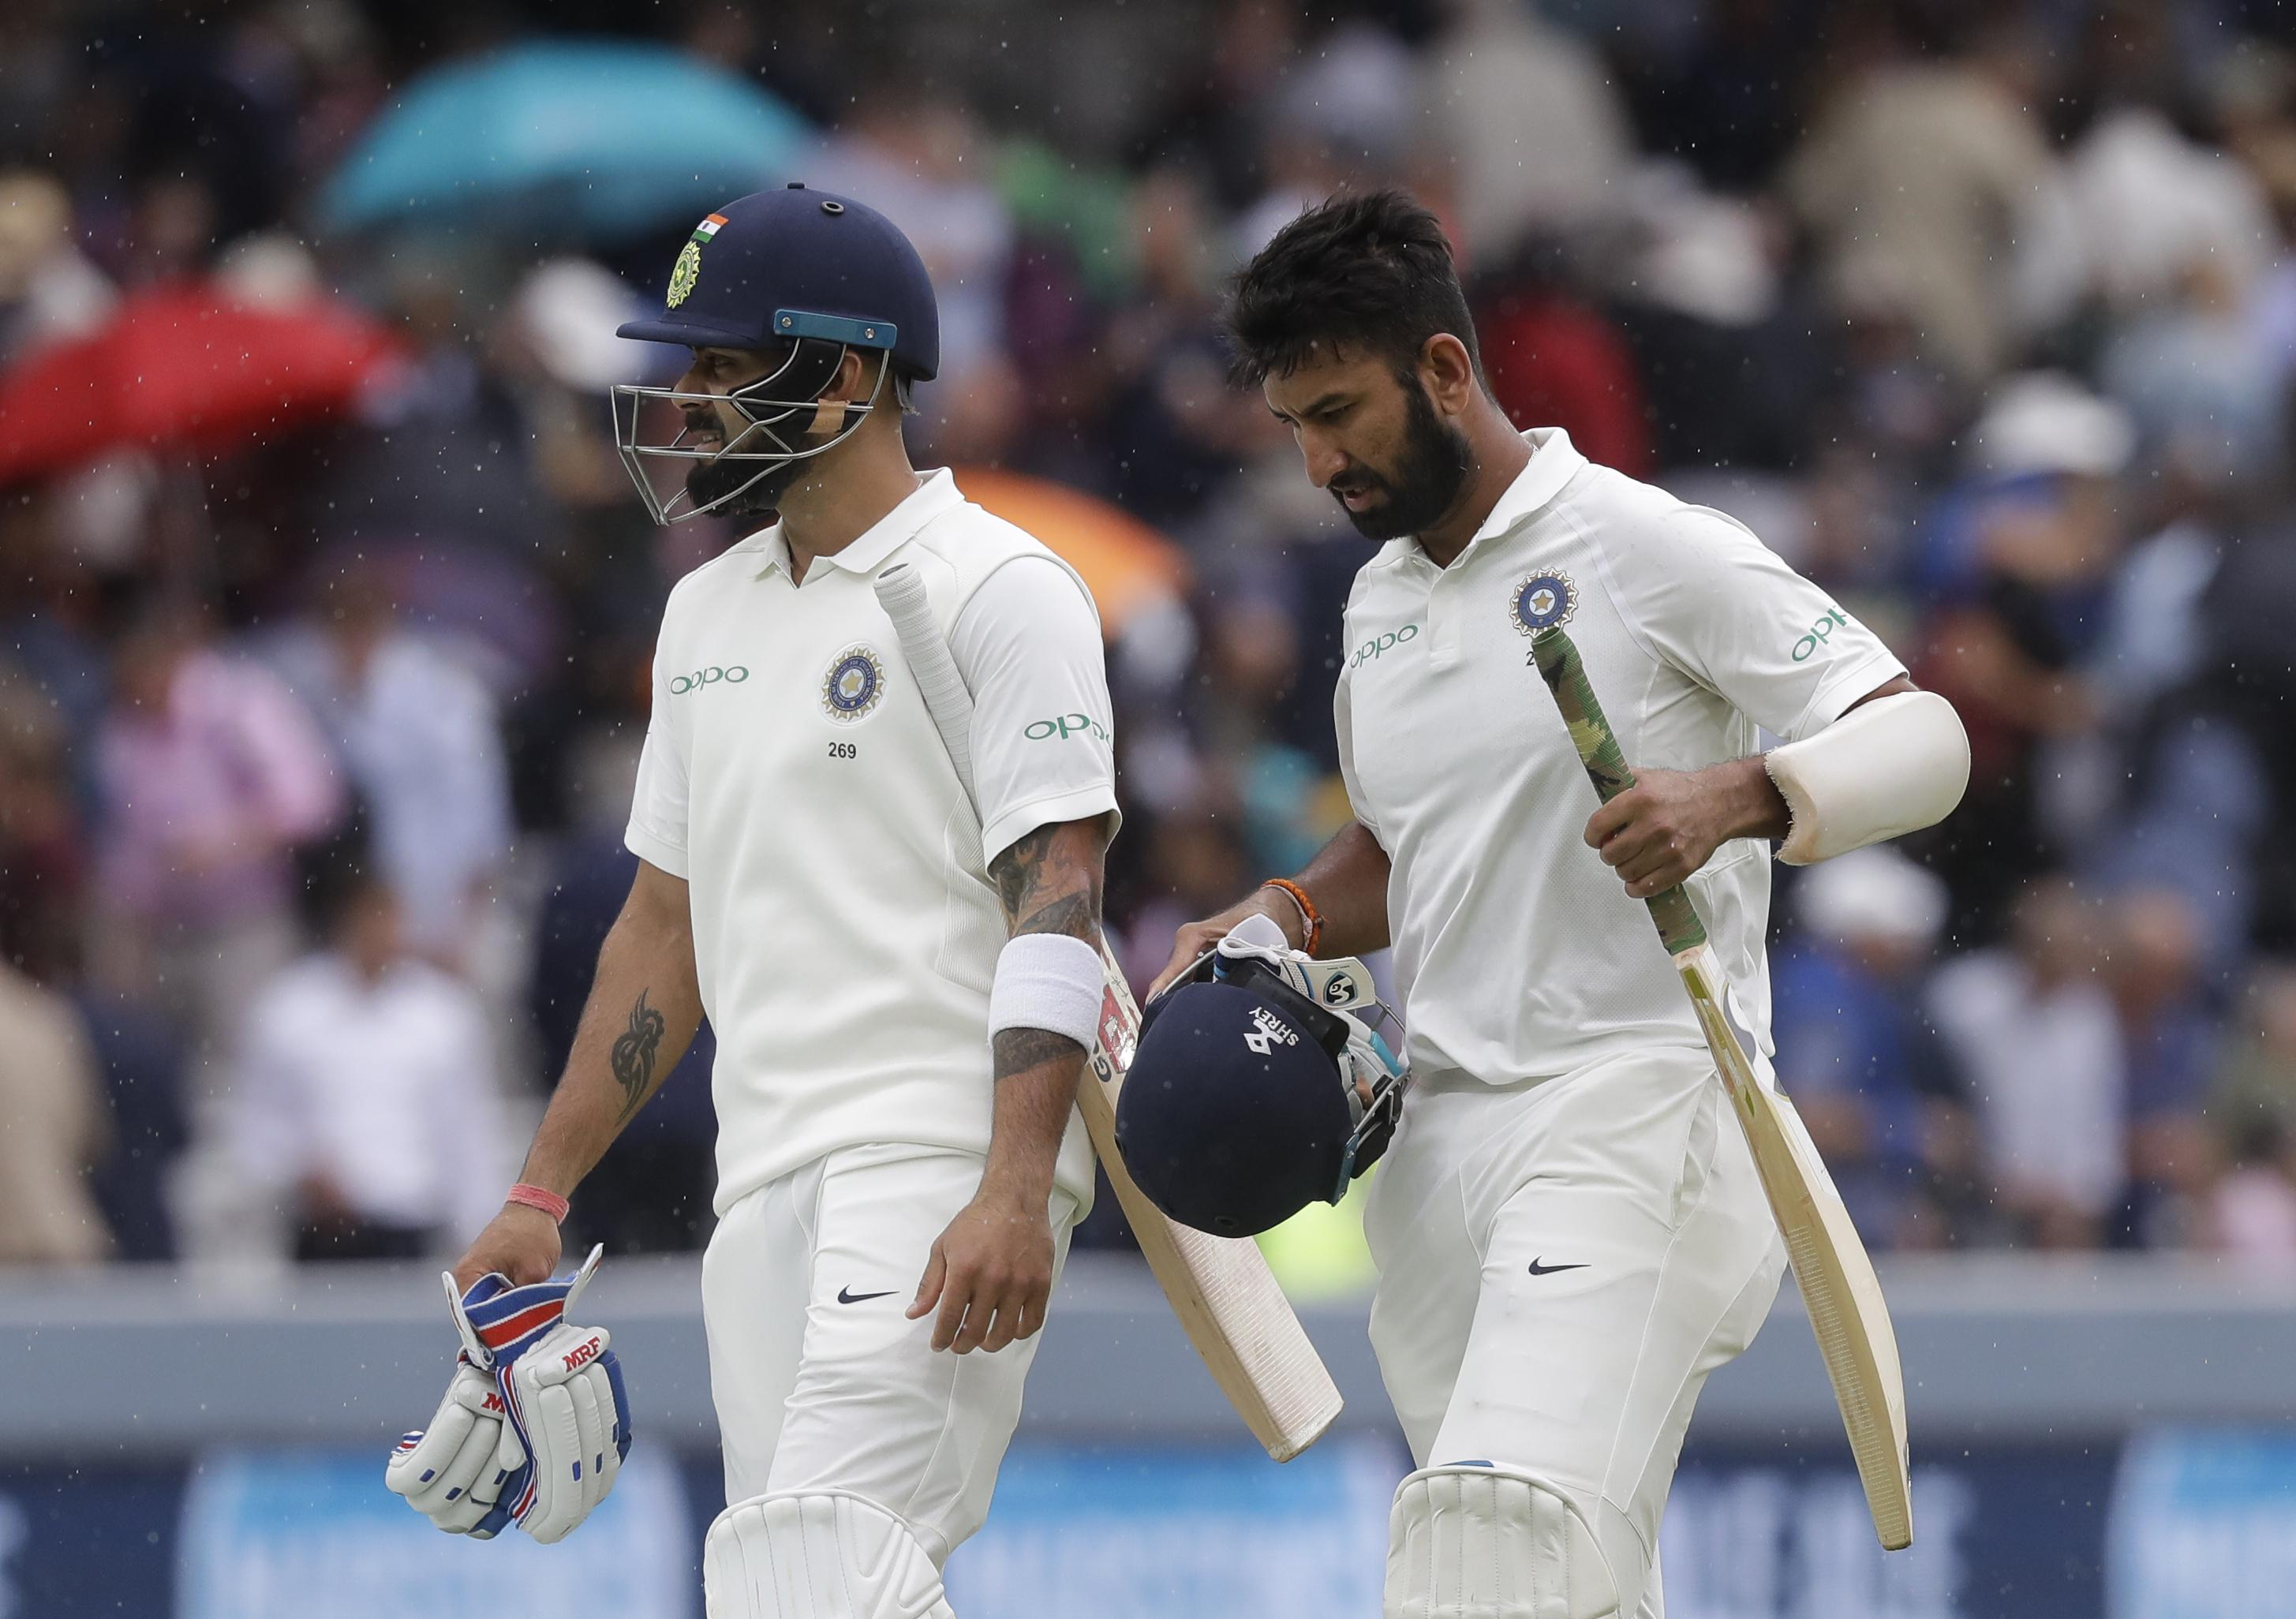 India suffered a horror run out in a breathless five minutes at Lord's